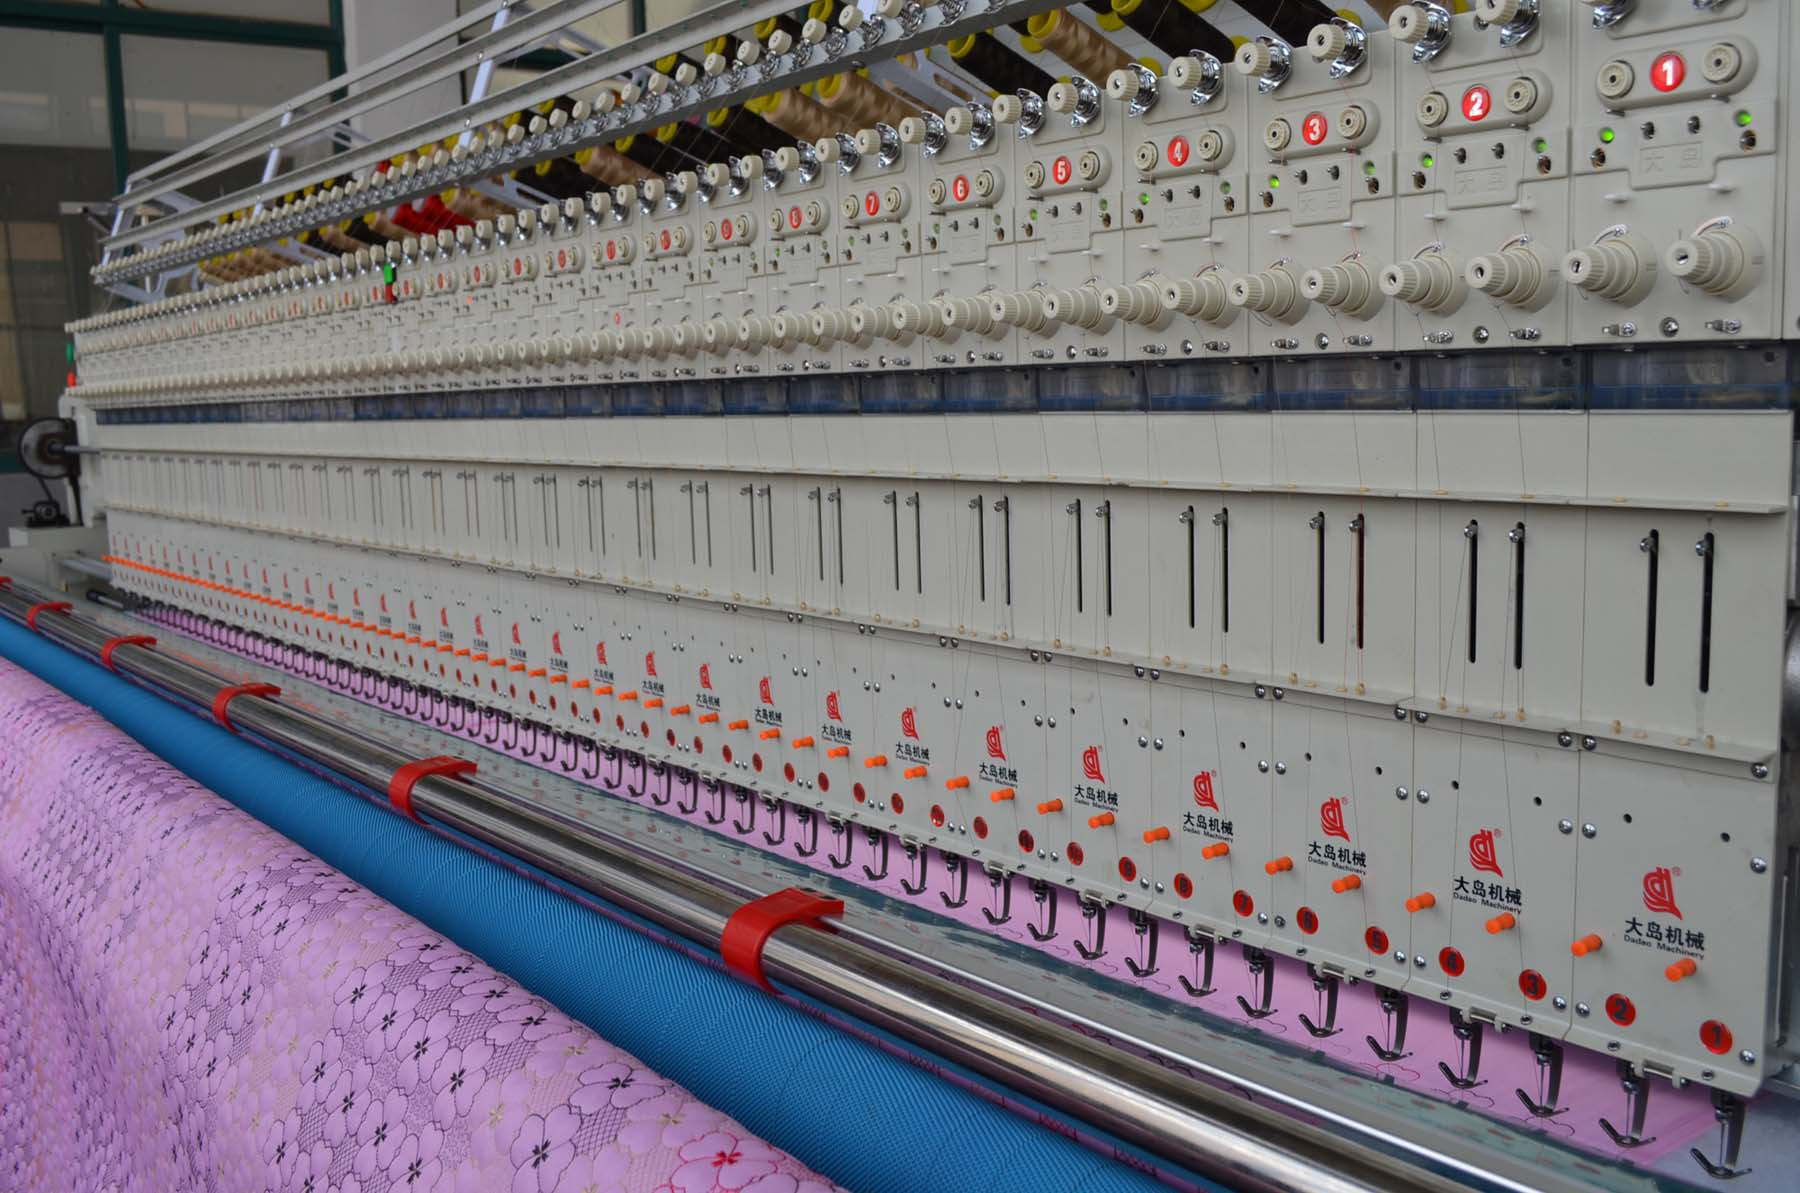 Quilting embroidery machine for producing home textiles, apparel, mats, curtains...